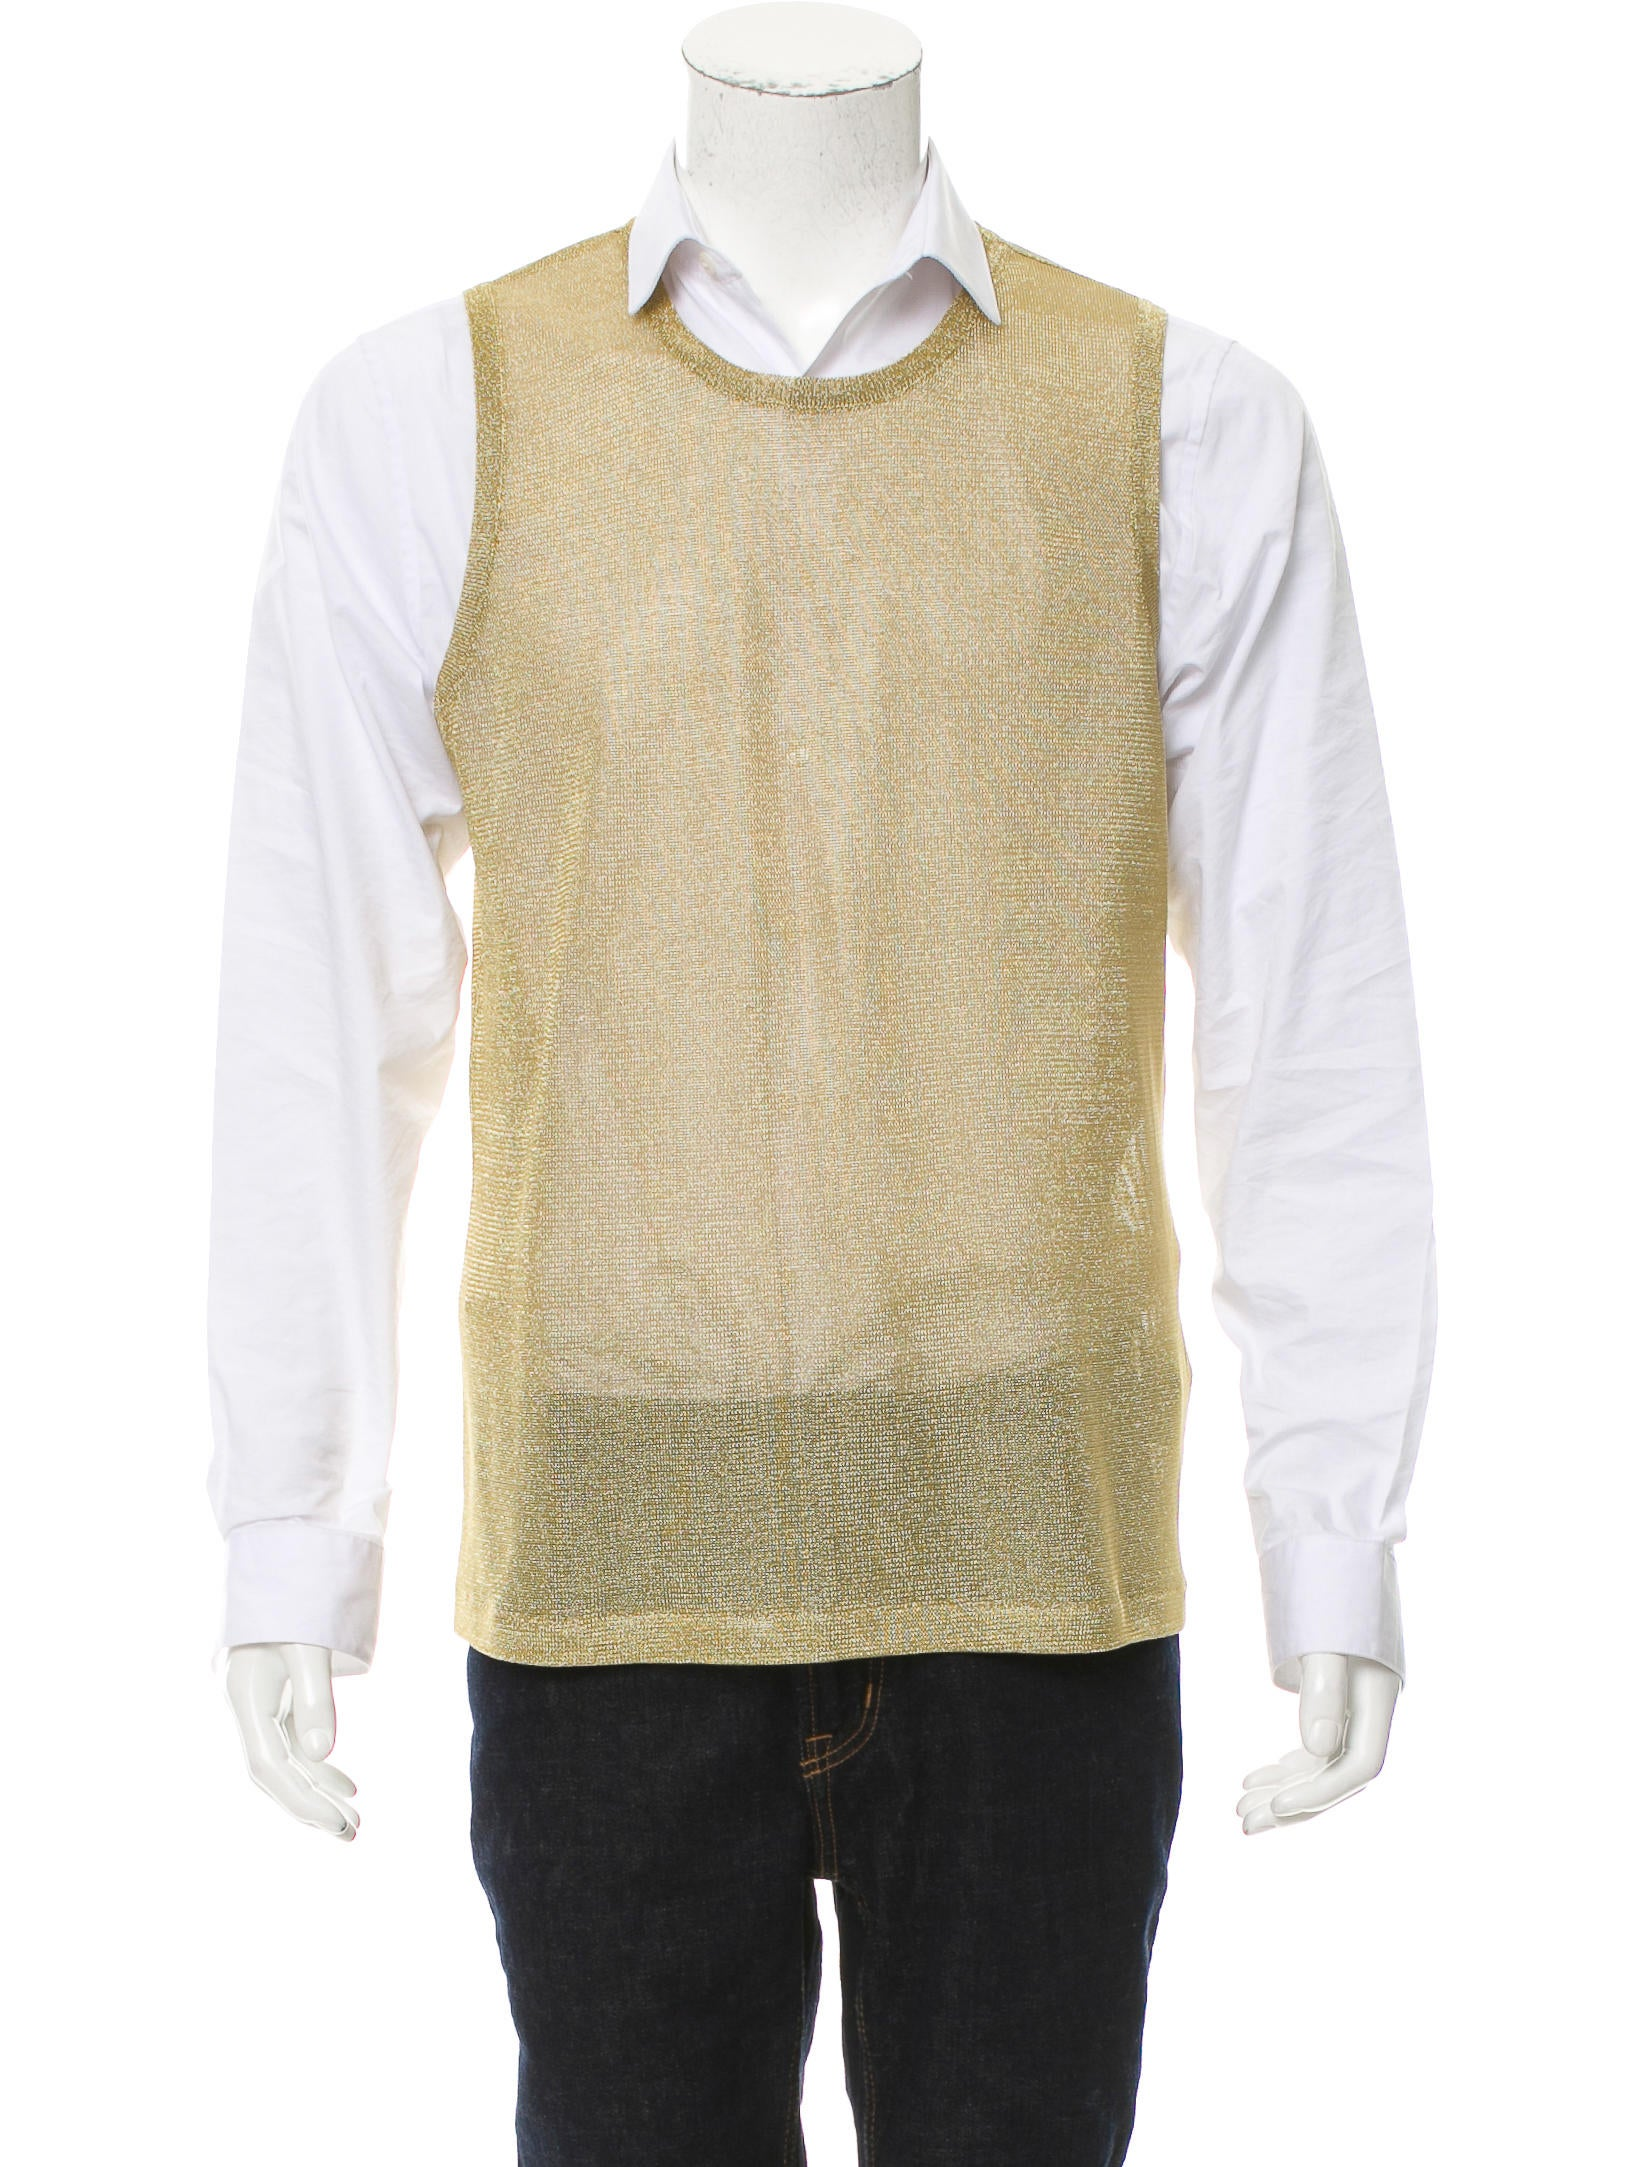 Versace Open Knit Sweater Vest - Clothing - VES31111 | The RealReal